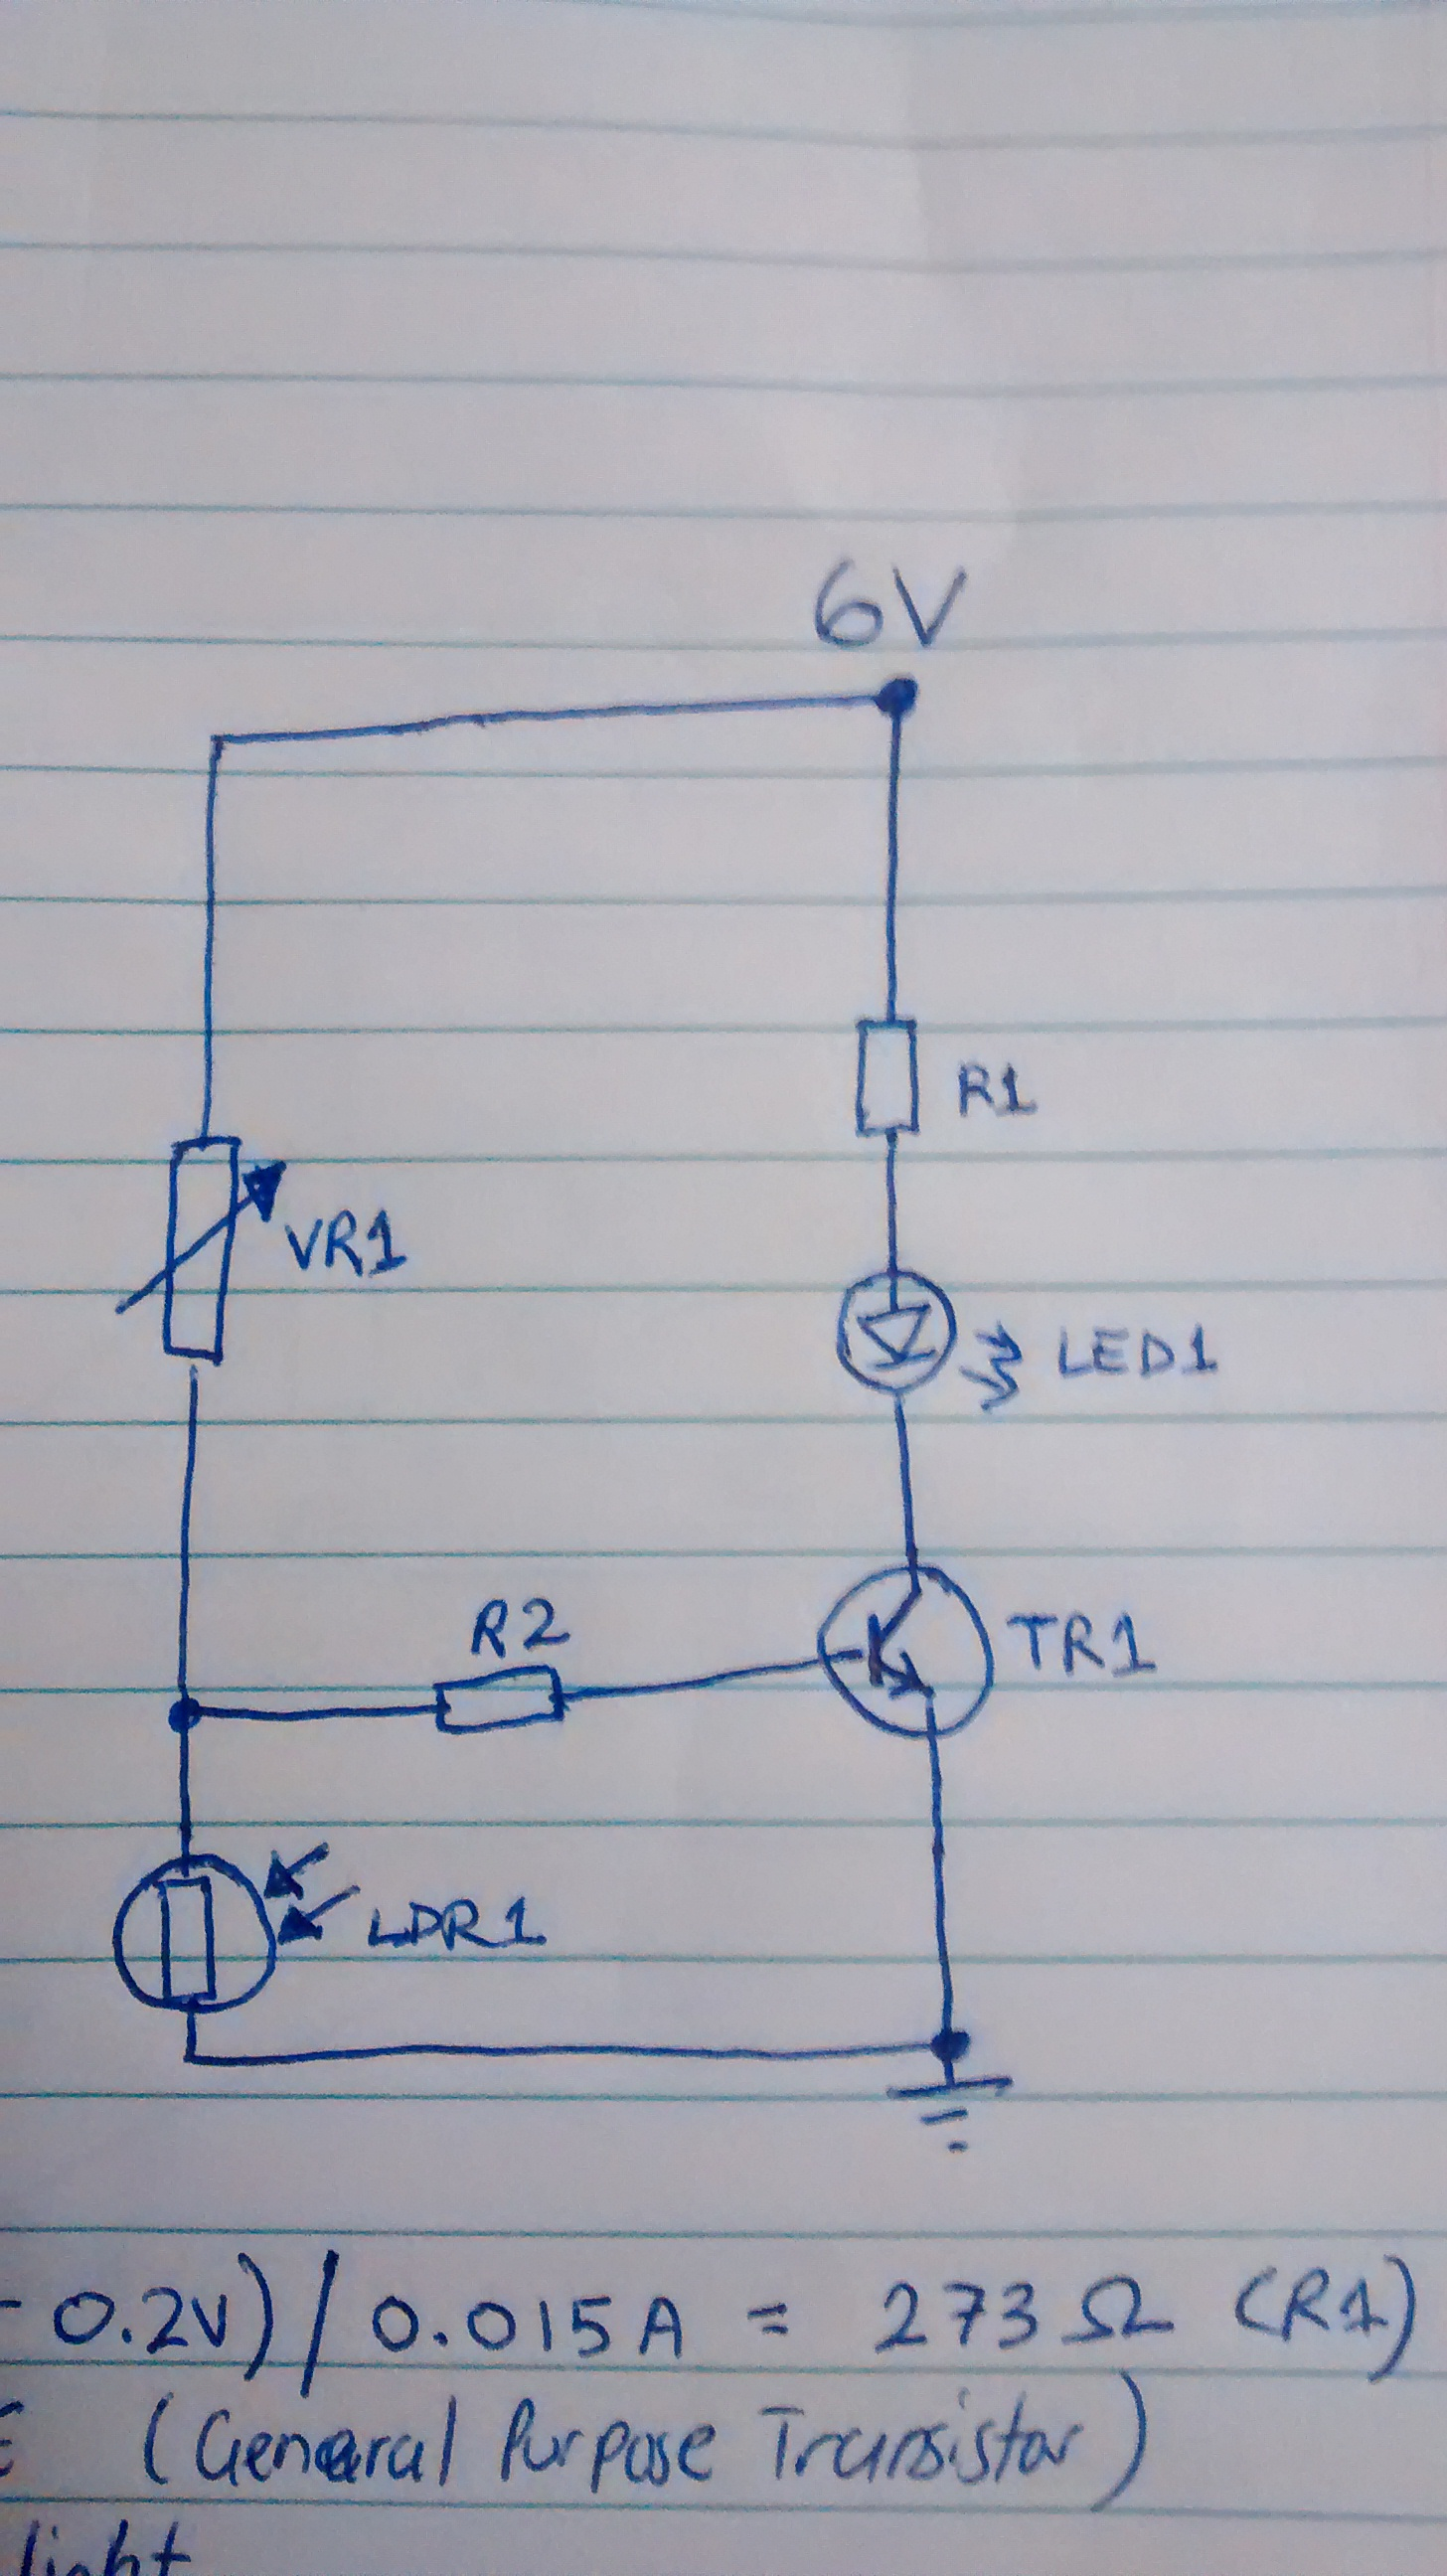 Calculate Value Of Base Emitter Resistor For Dark Activated Light The Schematic Darkactivated Switch Circuit We Will Build Is Img 20151025 012029354thumba75f8a7